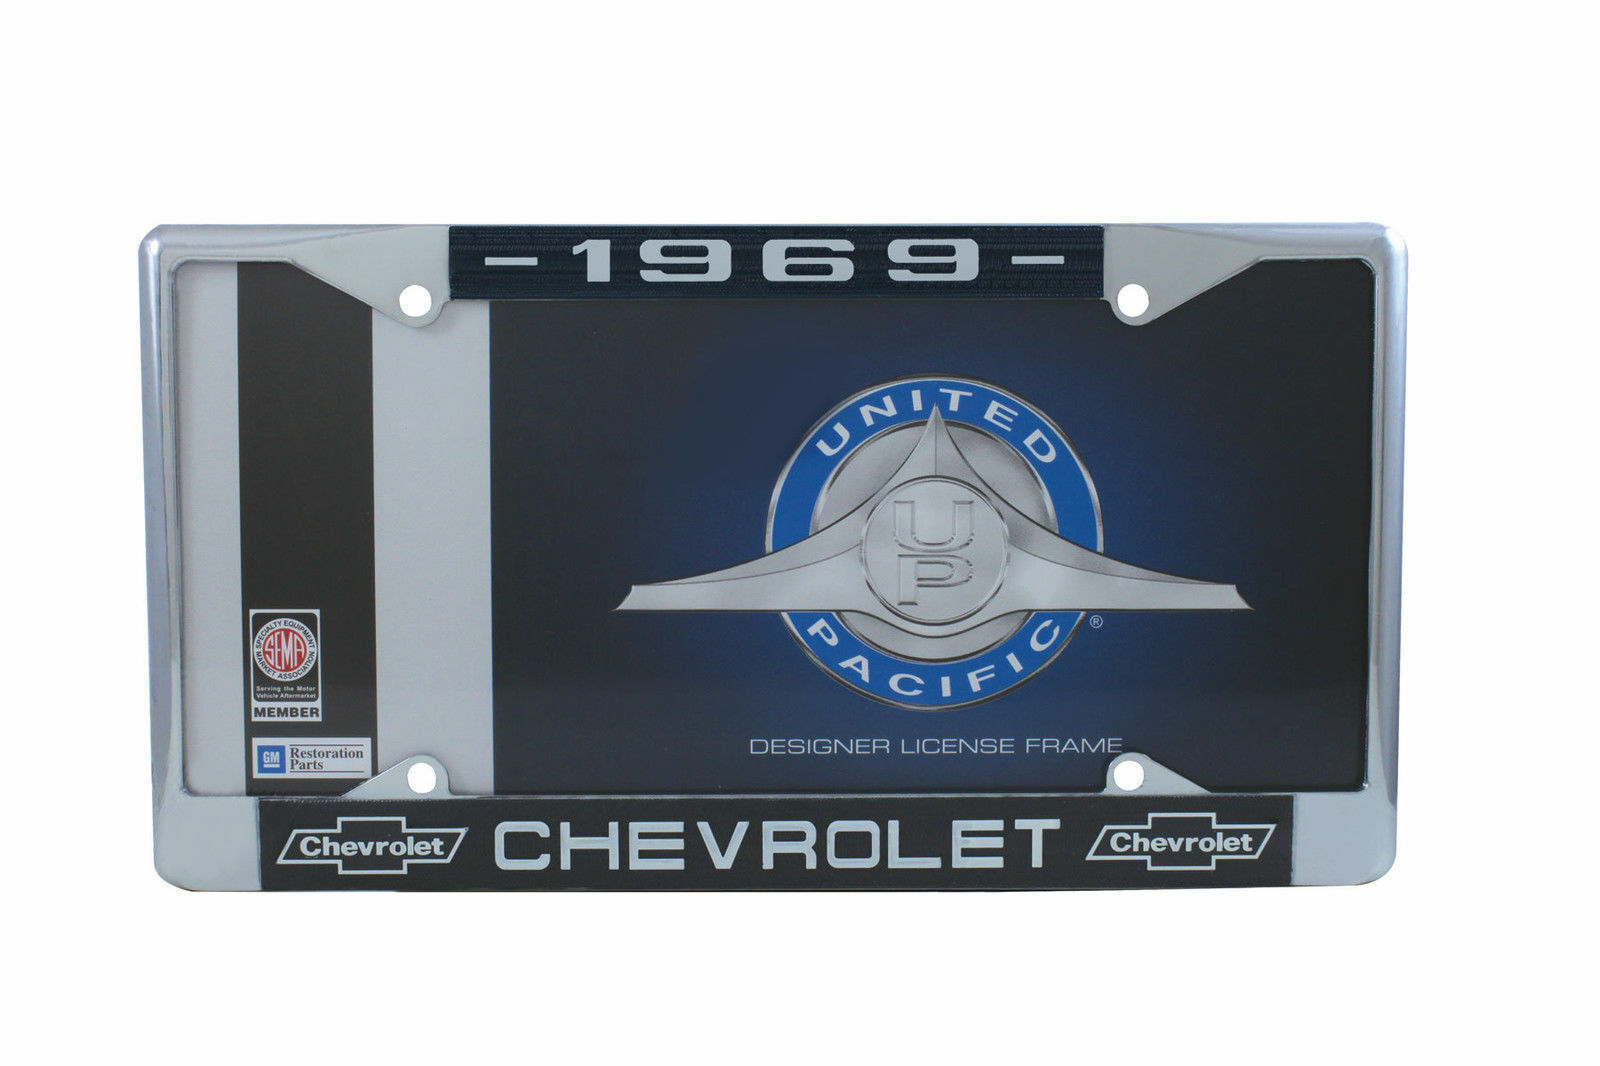 NEW PAIR OF 1969 CHEVROLET METAL LICENSE PLATE FRAME CAR OR TRUCK GM LICENSED 69